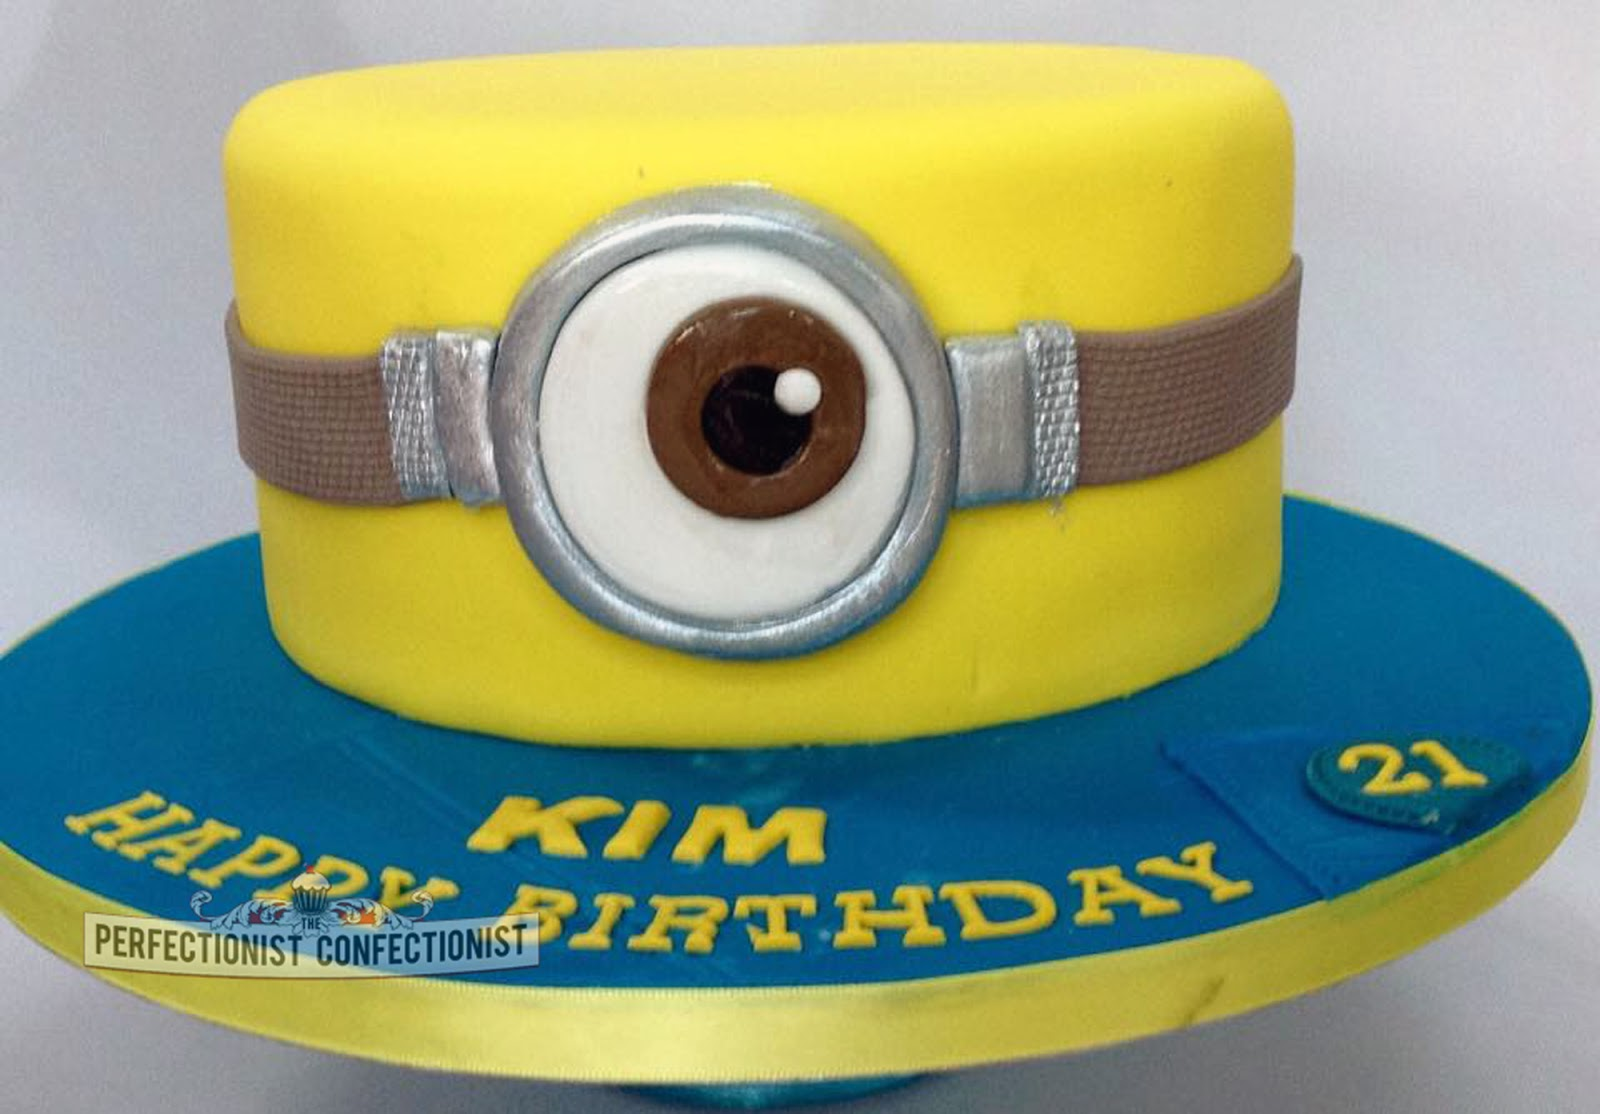 The Perfectionist Confectionist Minion 21st Birthday Cake